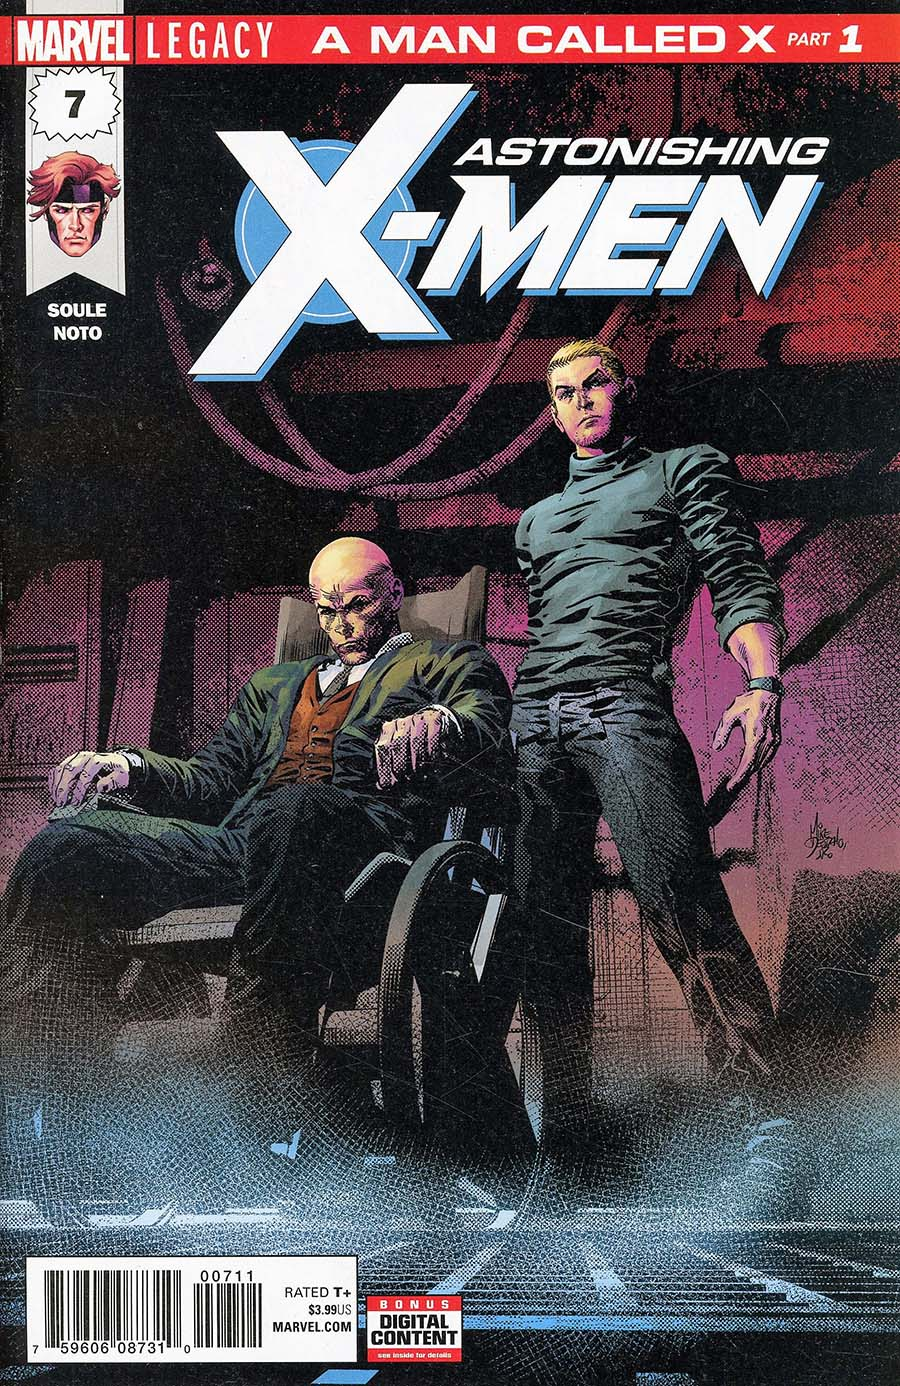 Astonishing X-Men Vol 4 #7 Cover A 1st Ptg Regular Phil Noto Cover (Marvel Legacy Tie-In)